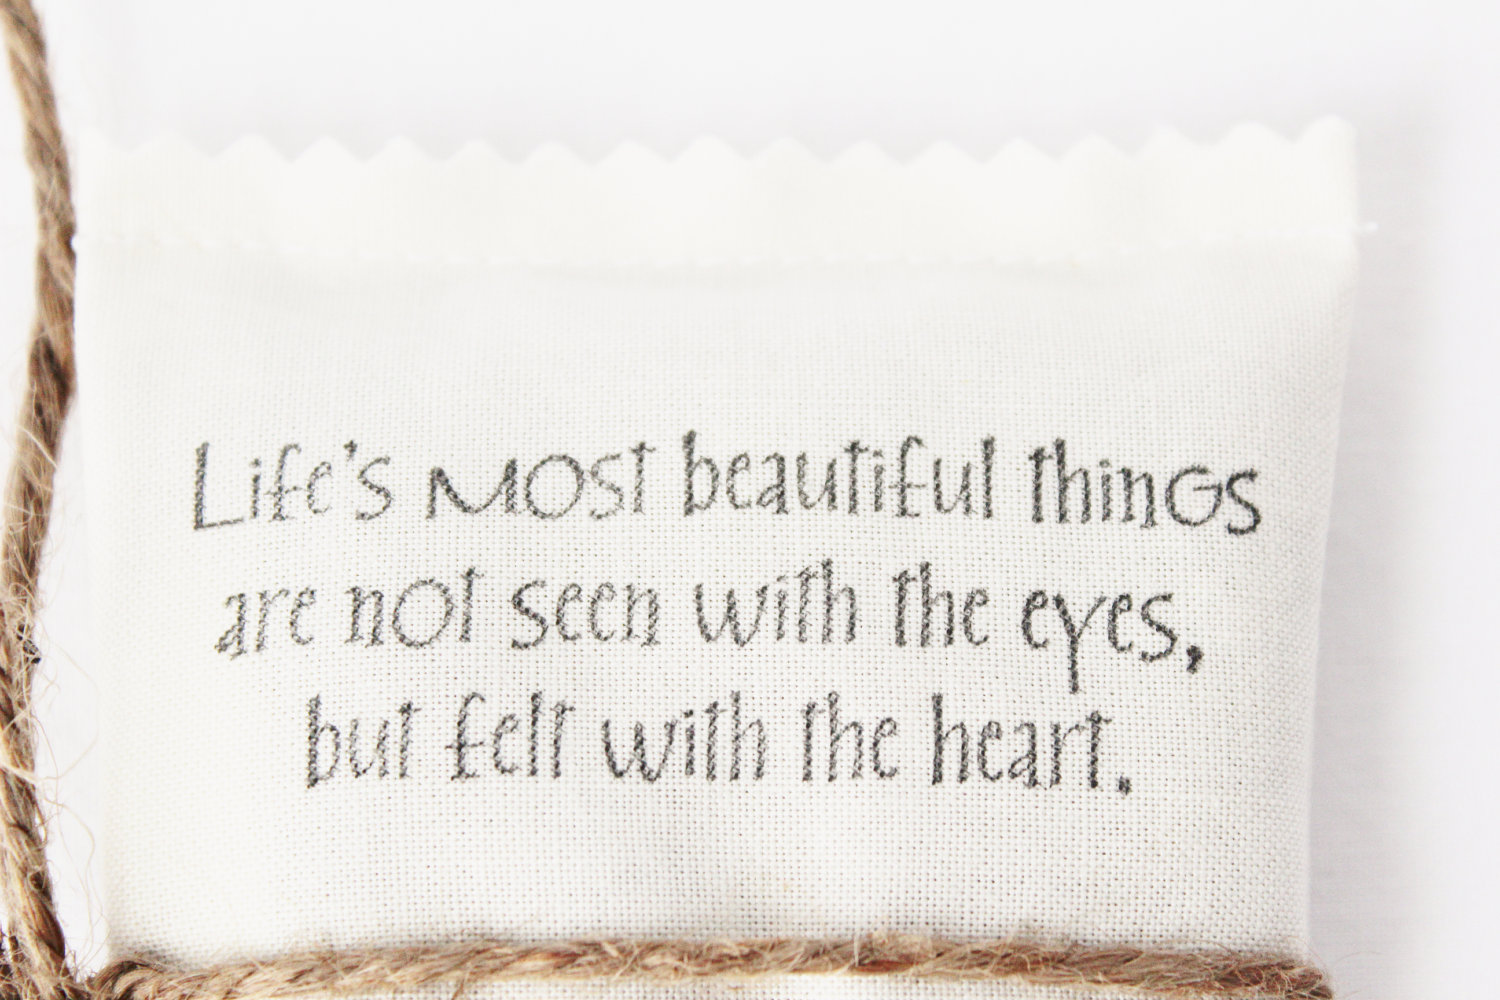 Life's Most Beautiful Things Are Not Seen With The Eyes, But Felt With The Heart